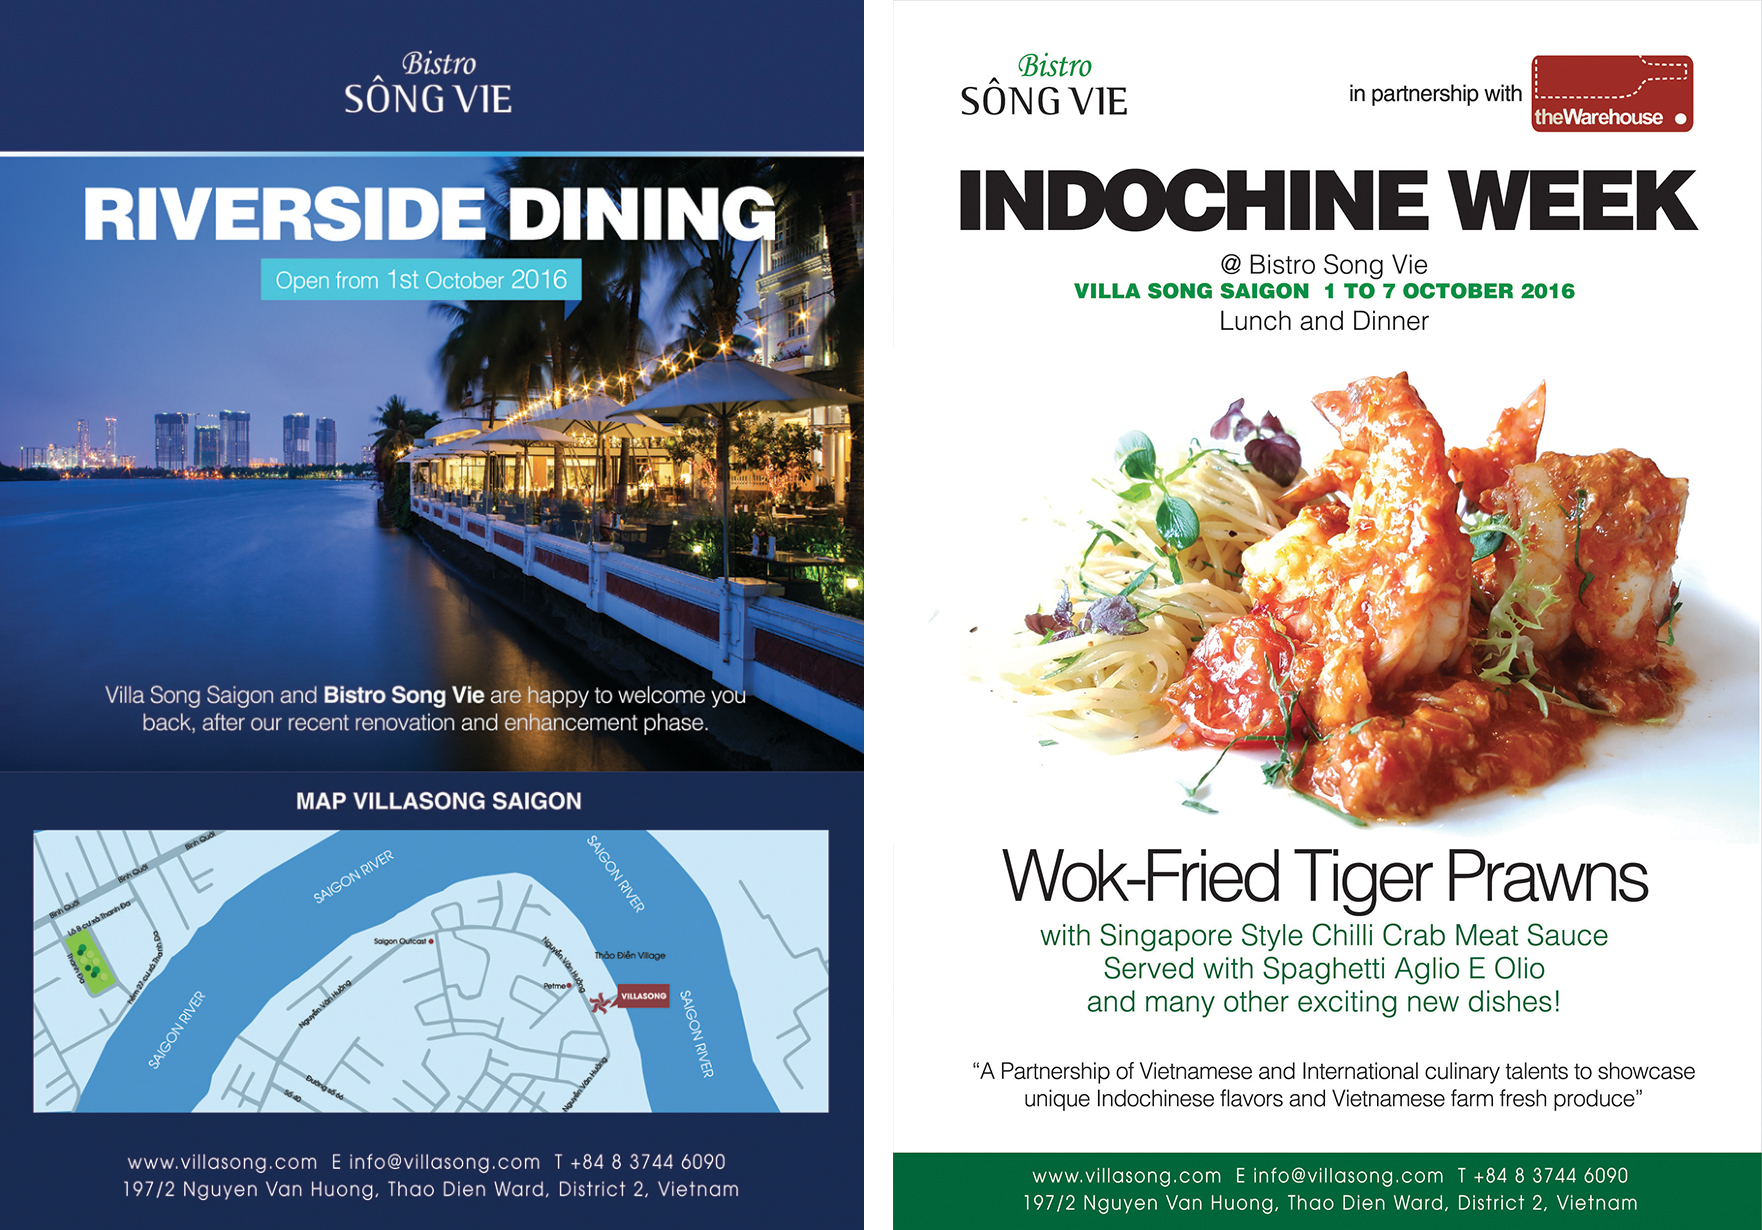 Press Archives Villa Song Saigon Hotel Tiger River Spas Hot Tub Wiring Diagram New And Exciting Dishes Such As Wok Fried Nha Trang Prawns With Singapore Style Chilli Crab Meat Sauce Served Spaghetti Aglio E Olio